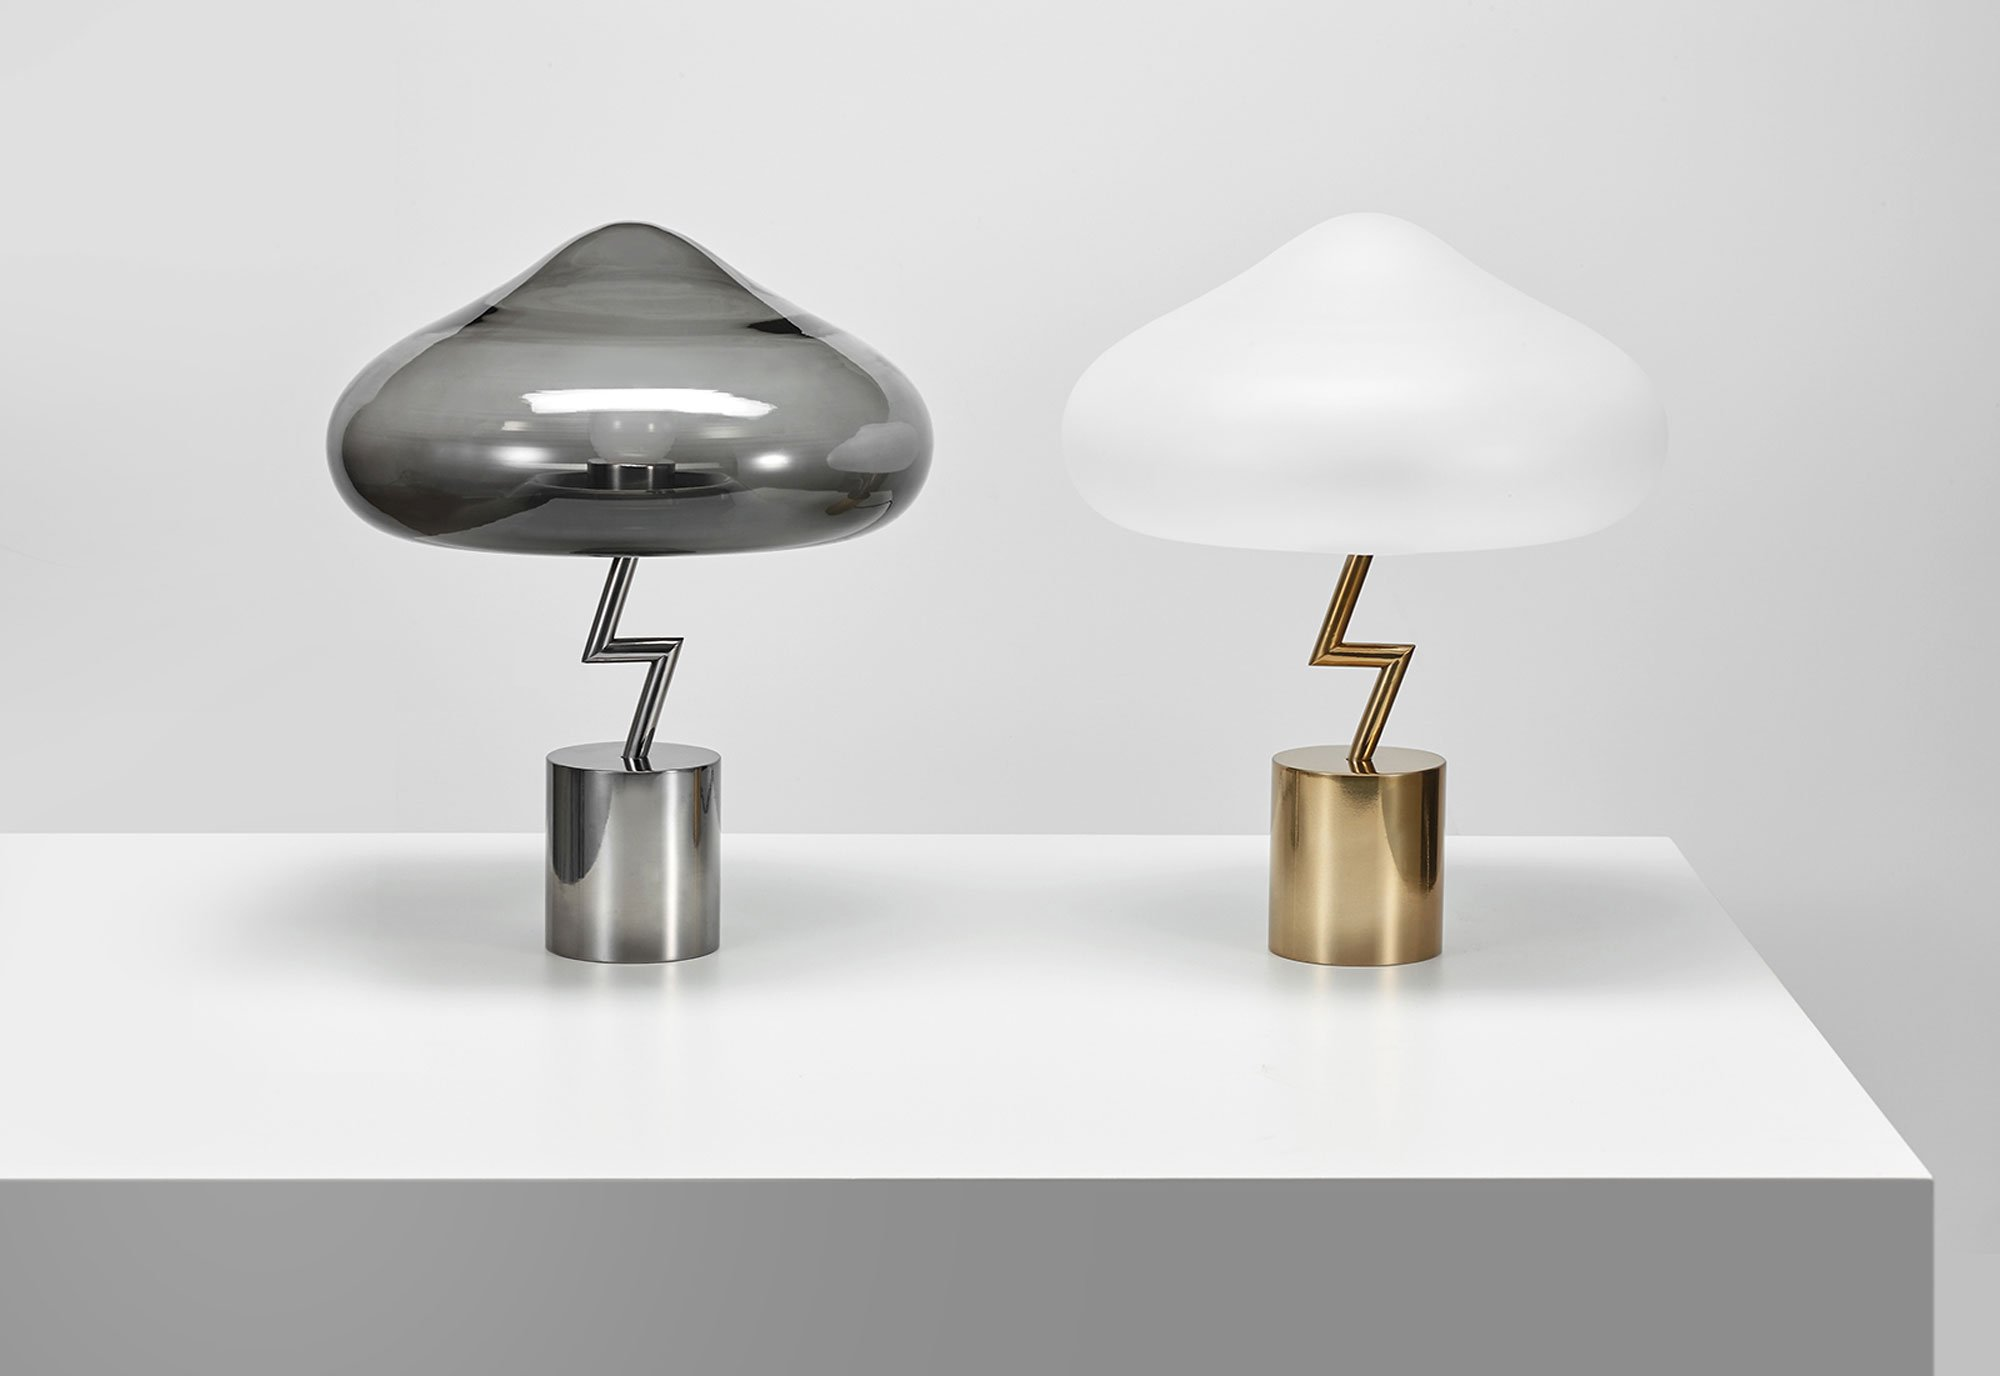 Creative Lighting Design: The Lighting Lamp By Jiyoun Kim